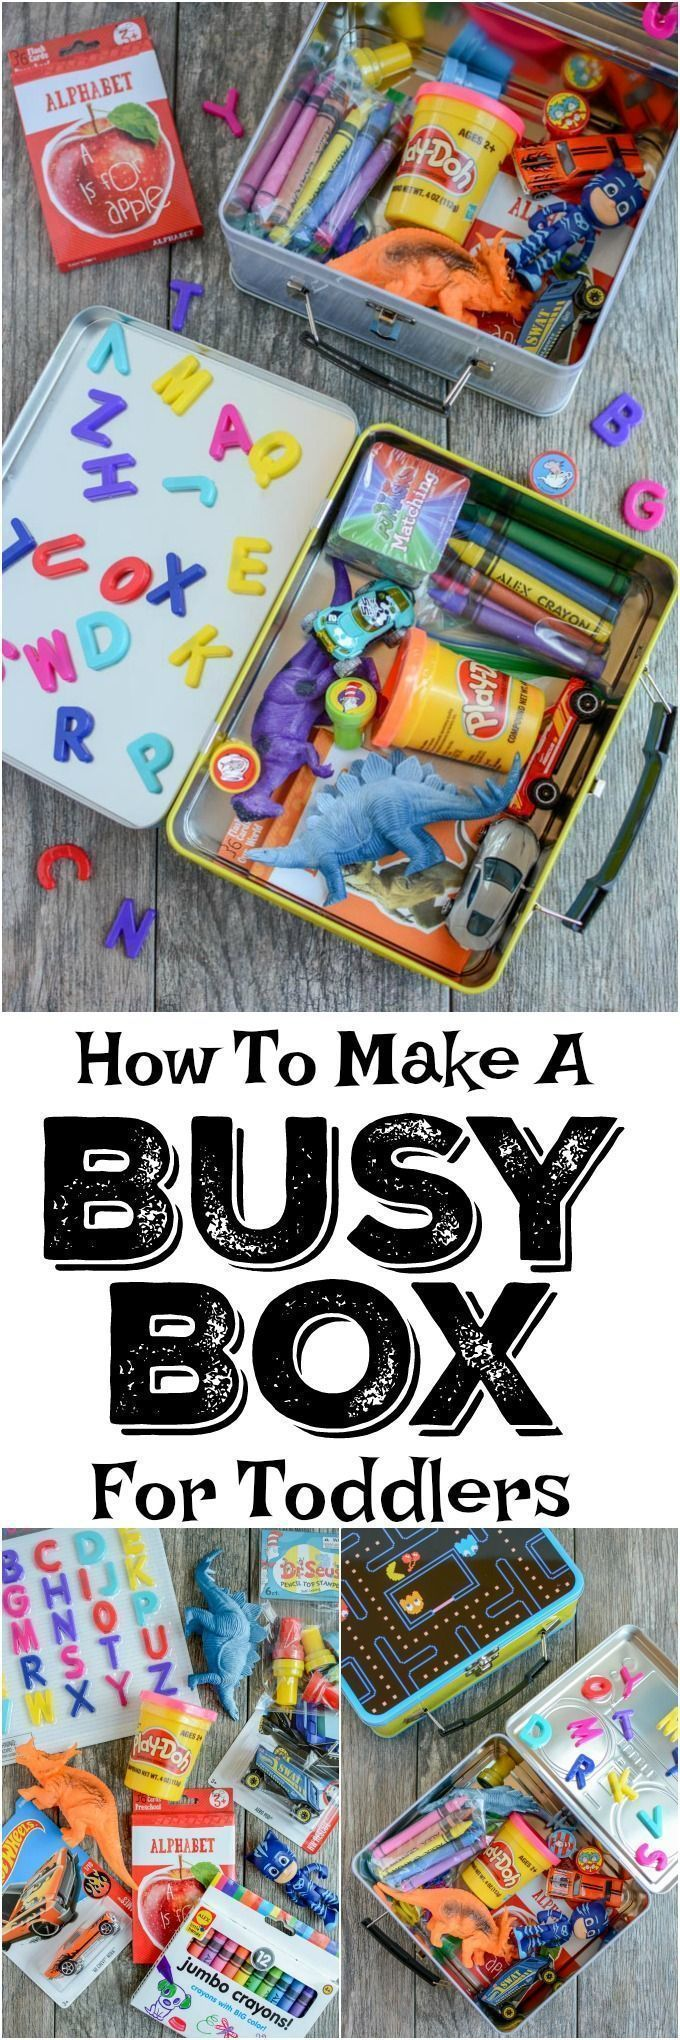 Learn how to make a busy box for toddlers. These boxes are easy to customize and perfect for keeping toddlers occupied at a restaurant, on a plane, while mom is nursing and more! #travelforkids #roadtripgamesfortoddlers